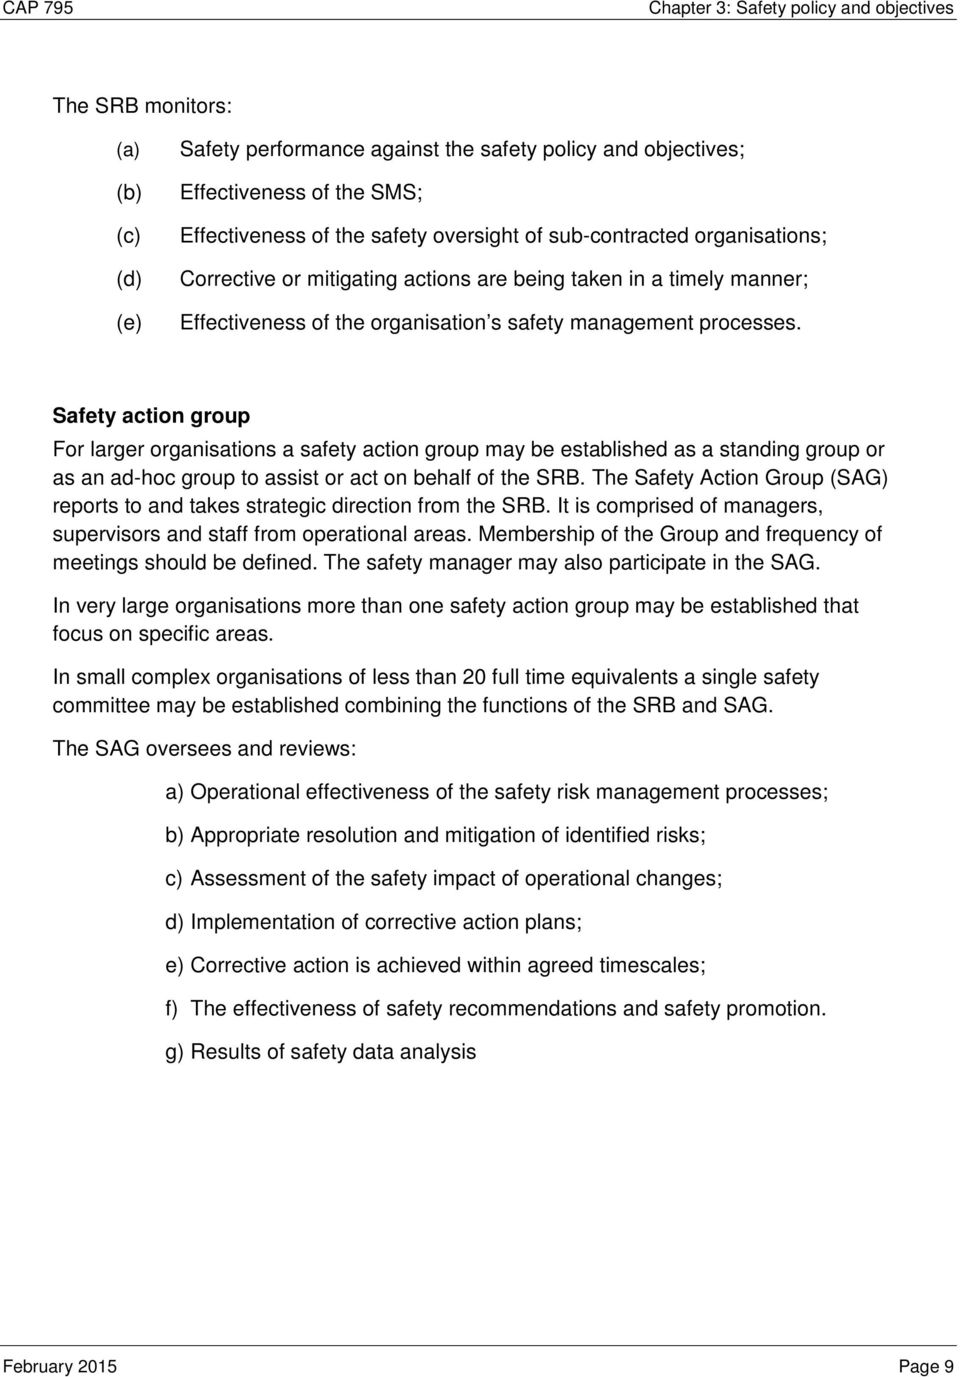 Safety action group For larger organisations a safety action group may be established as a standing group or as an ad-hoc group to assist or act on behalf of the SRB.